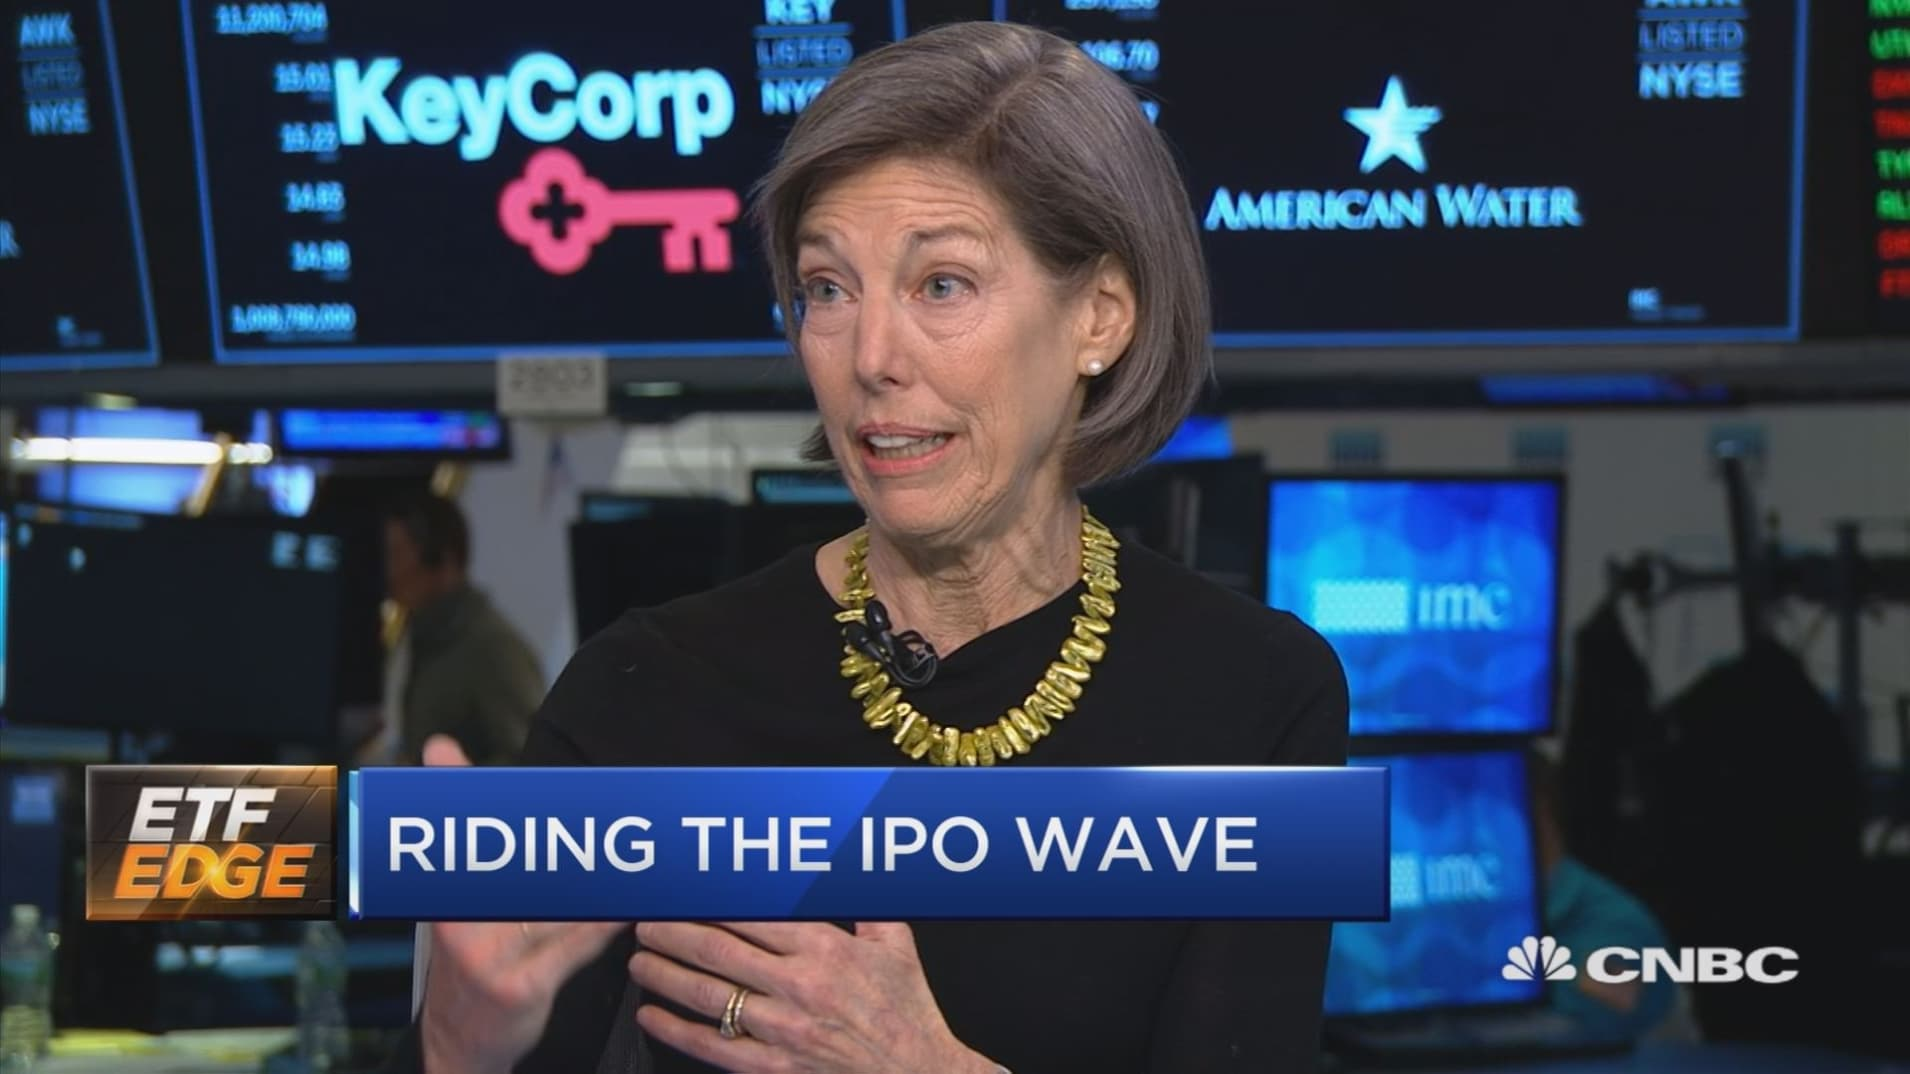 Here's what could bring an end to the market's IPO high, according to one expert